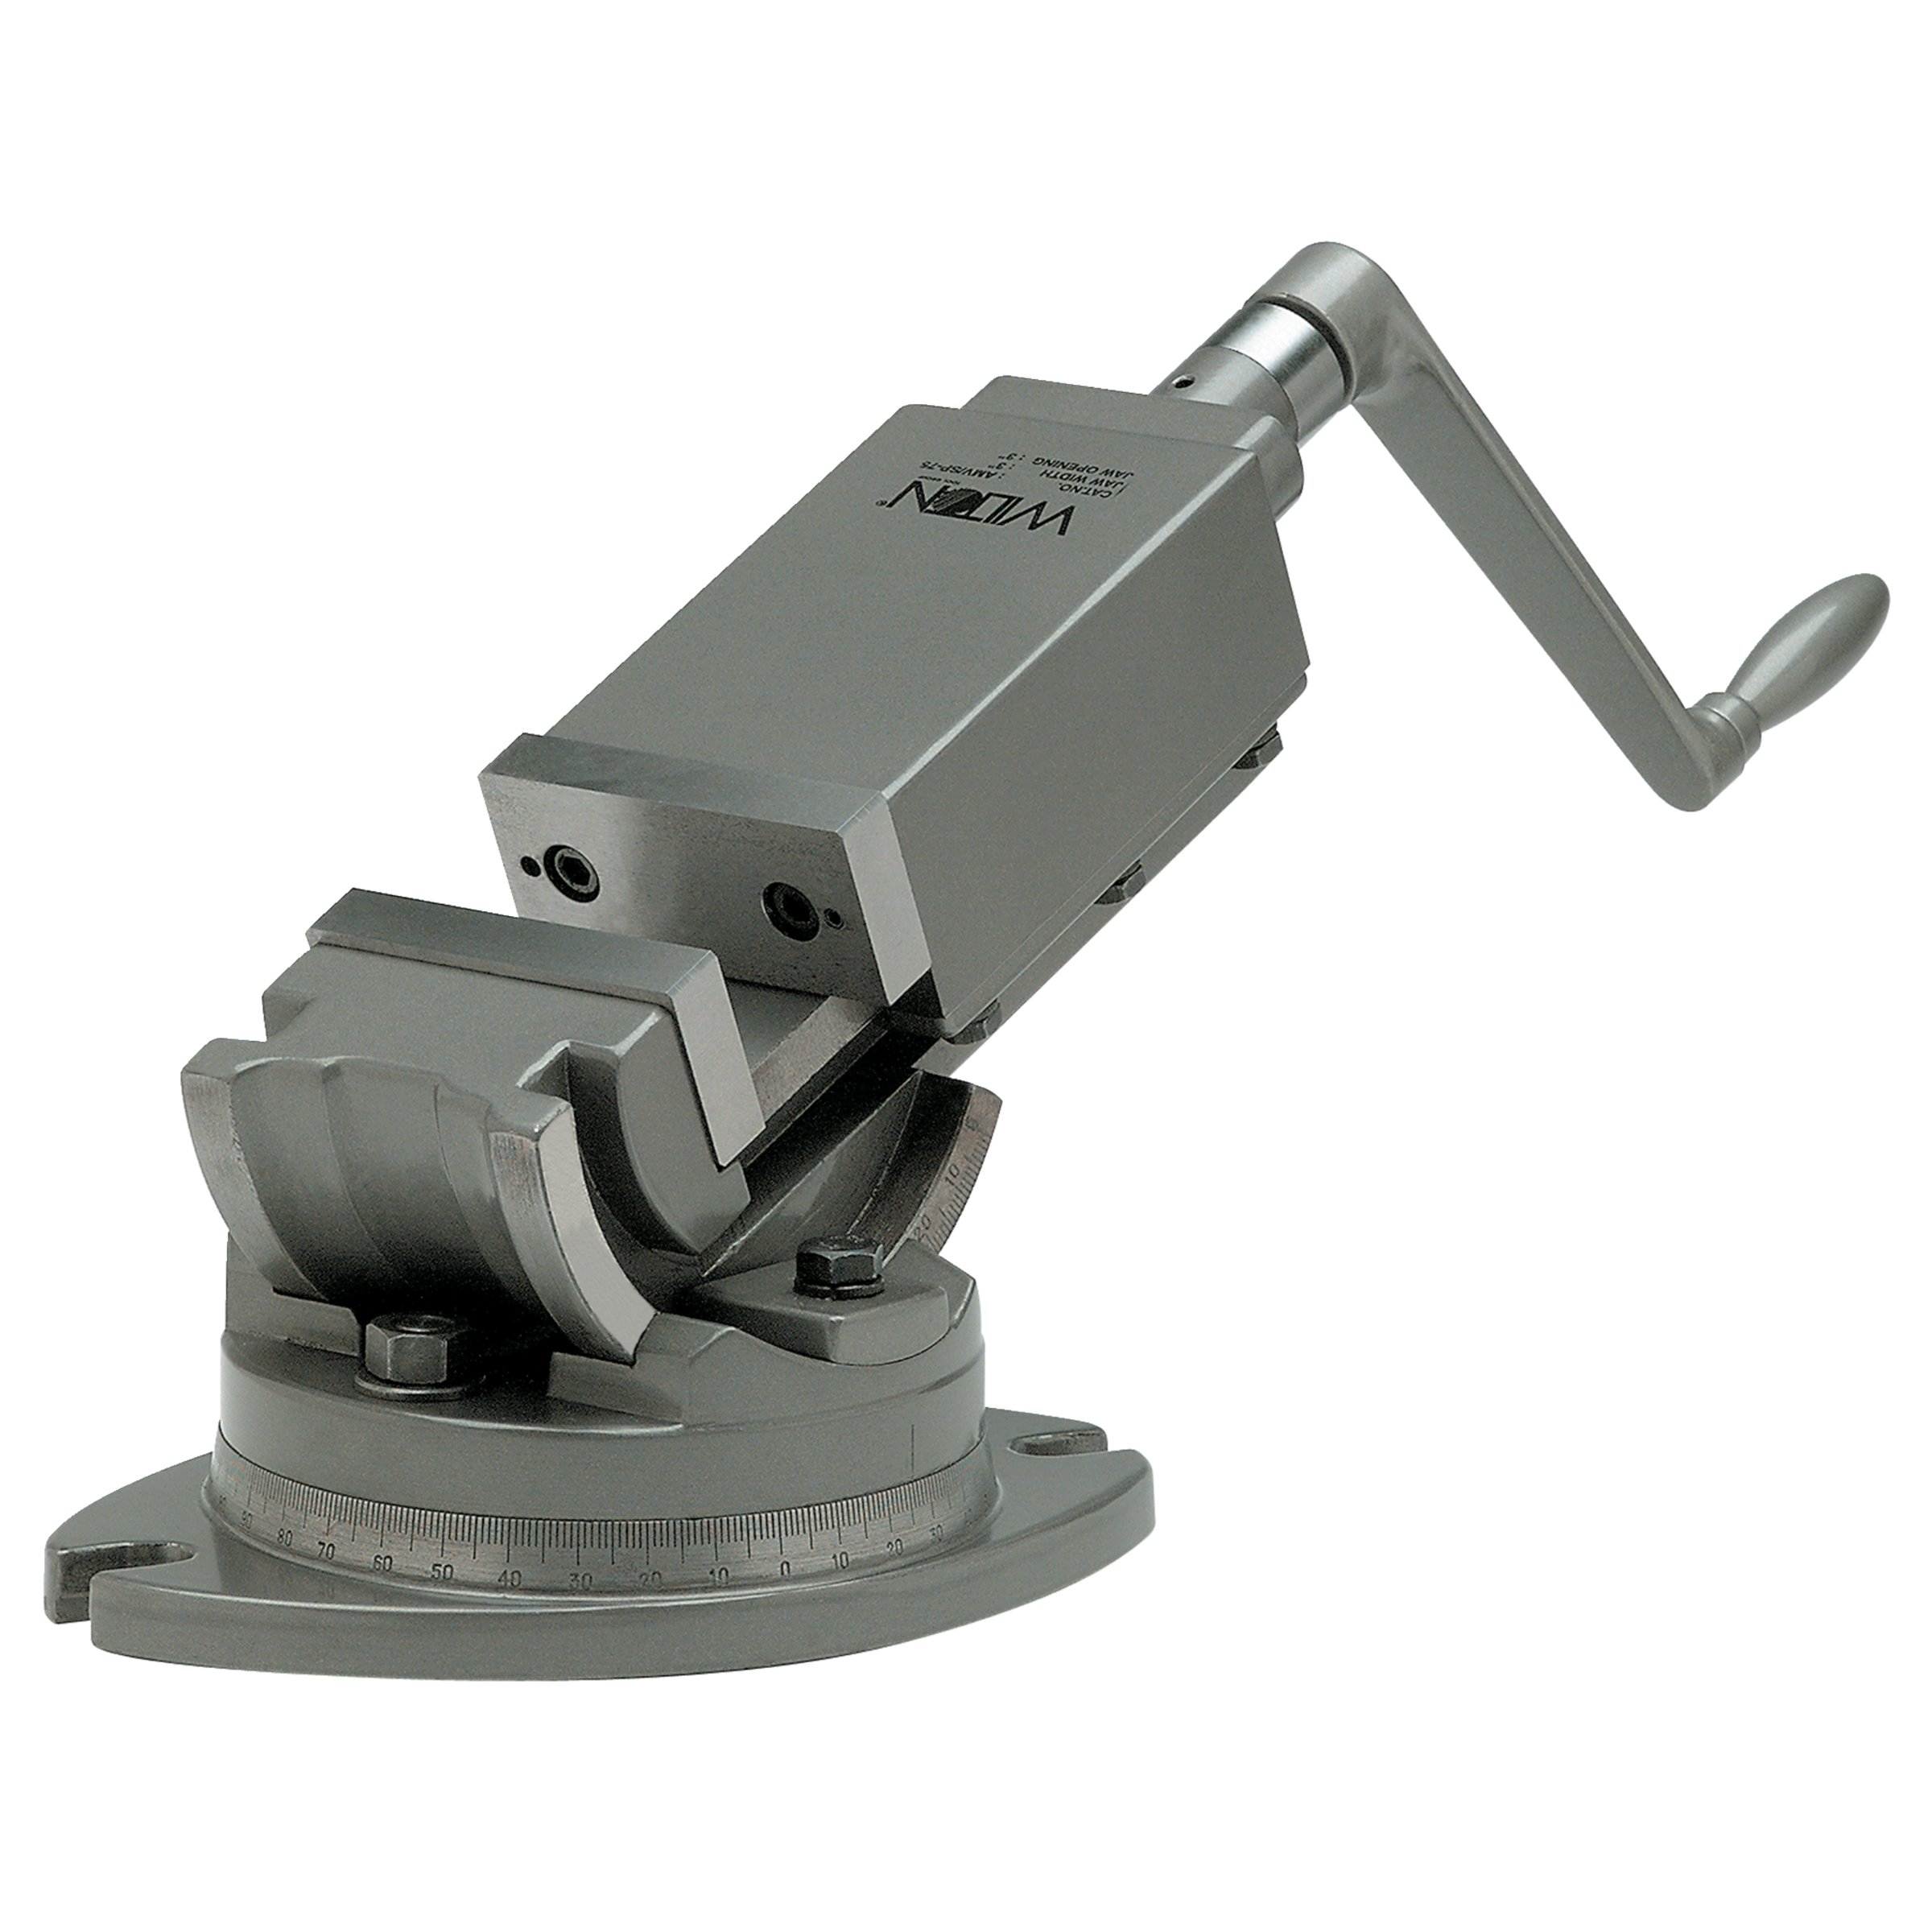 Wilton 11703 2-Axis Precision Angular Vise 2-Inch Jaw Width, 1-Inch Jaw Depth